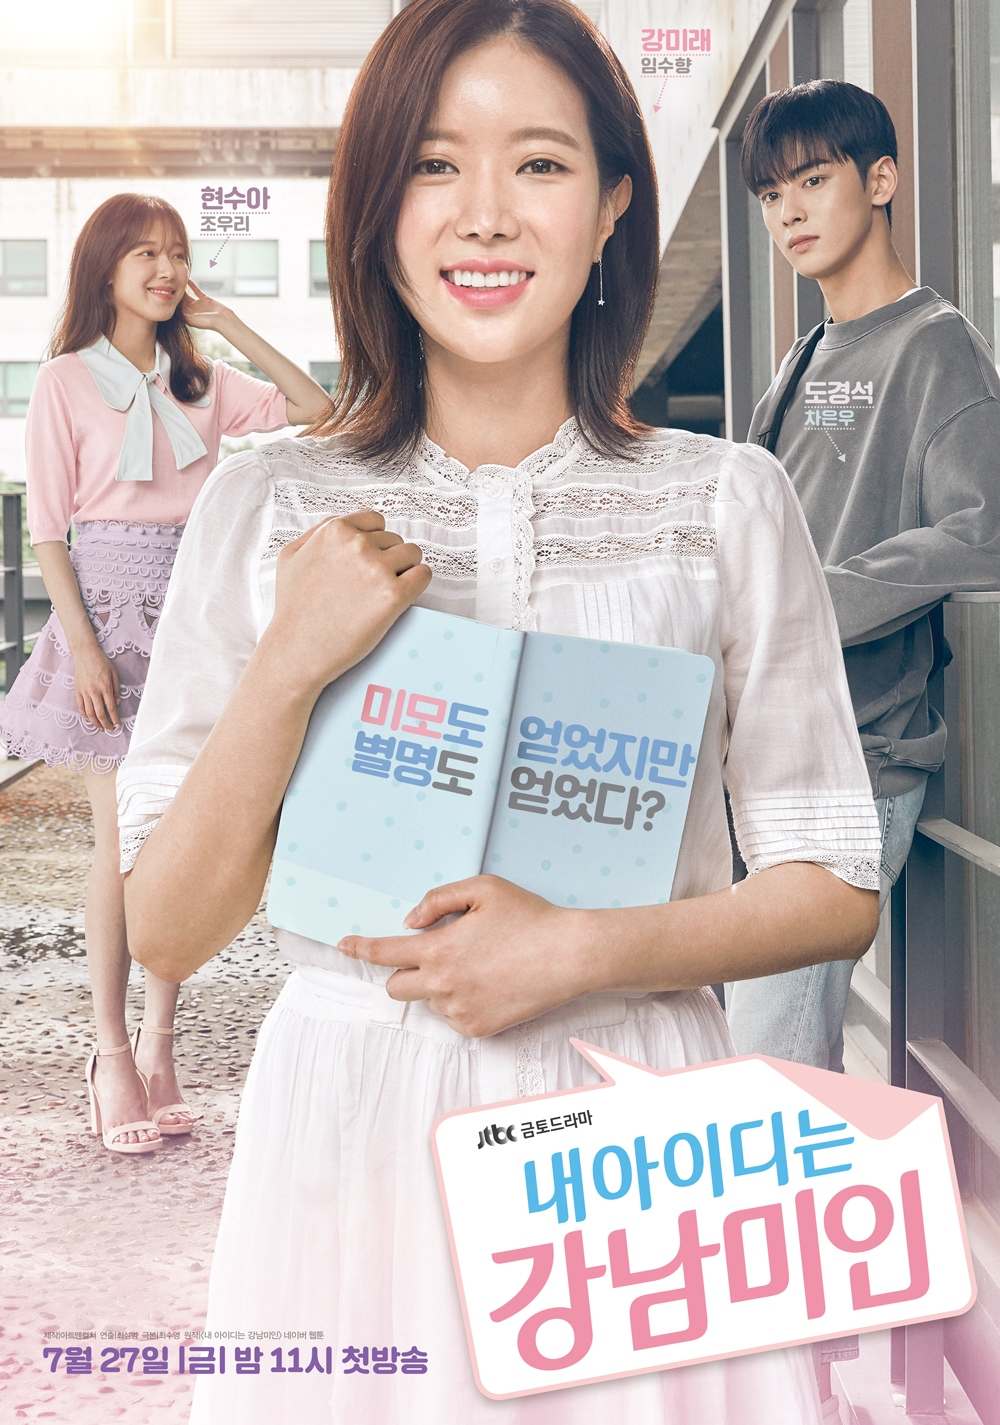 Kang Mi Rae recovers her self esteem after being bullied as she gets to know Do Kyung Suk after getting plastic surgery. Then she gets called the